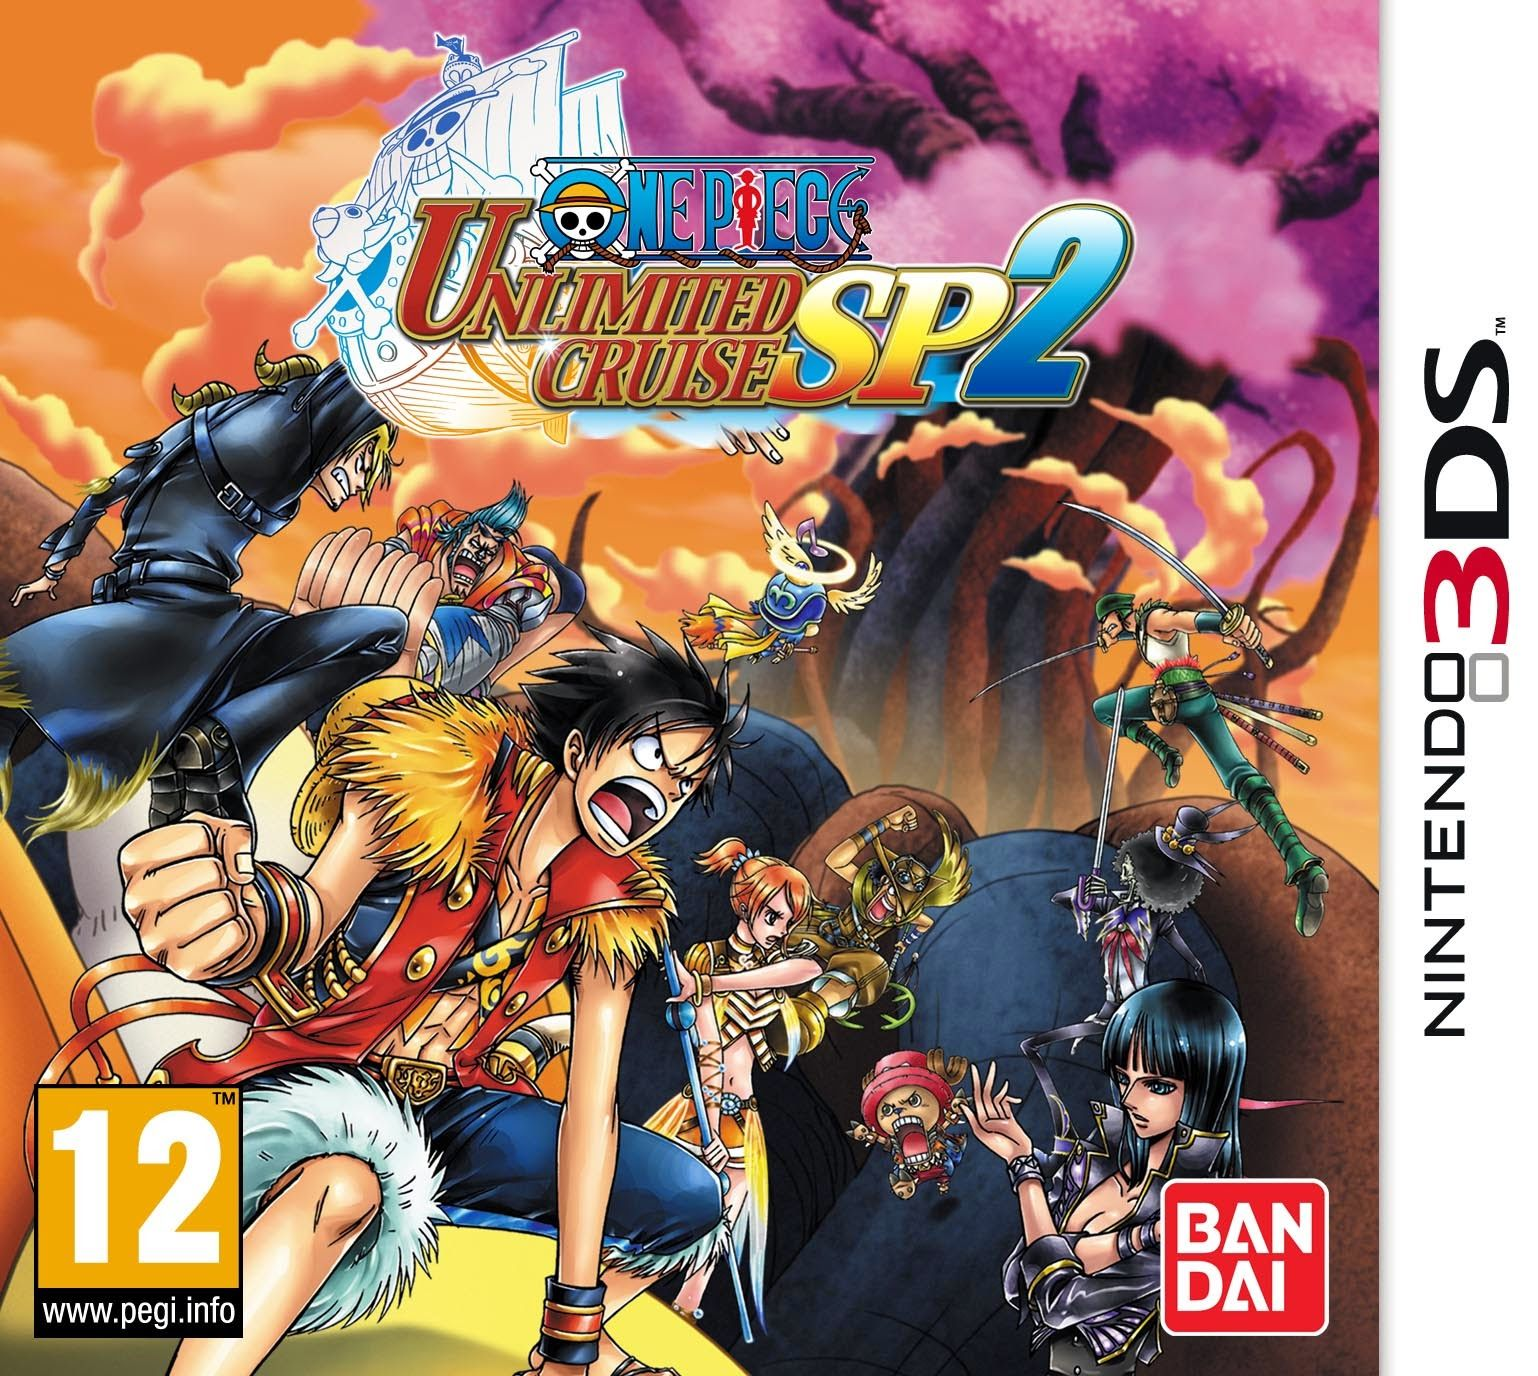 One Piece Unlimited Cruise SP 1& 2 Rom +Emulator [3DS